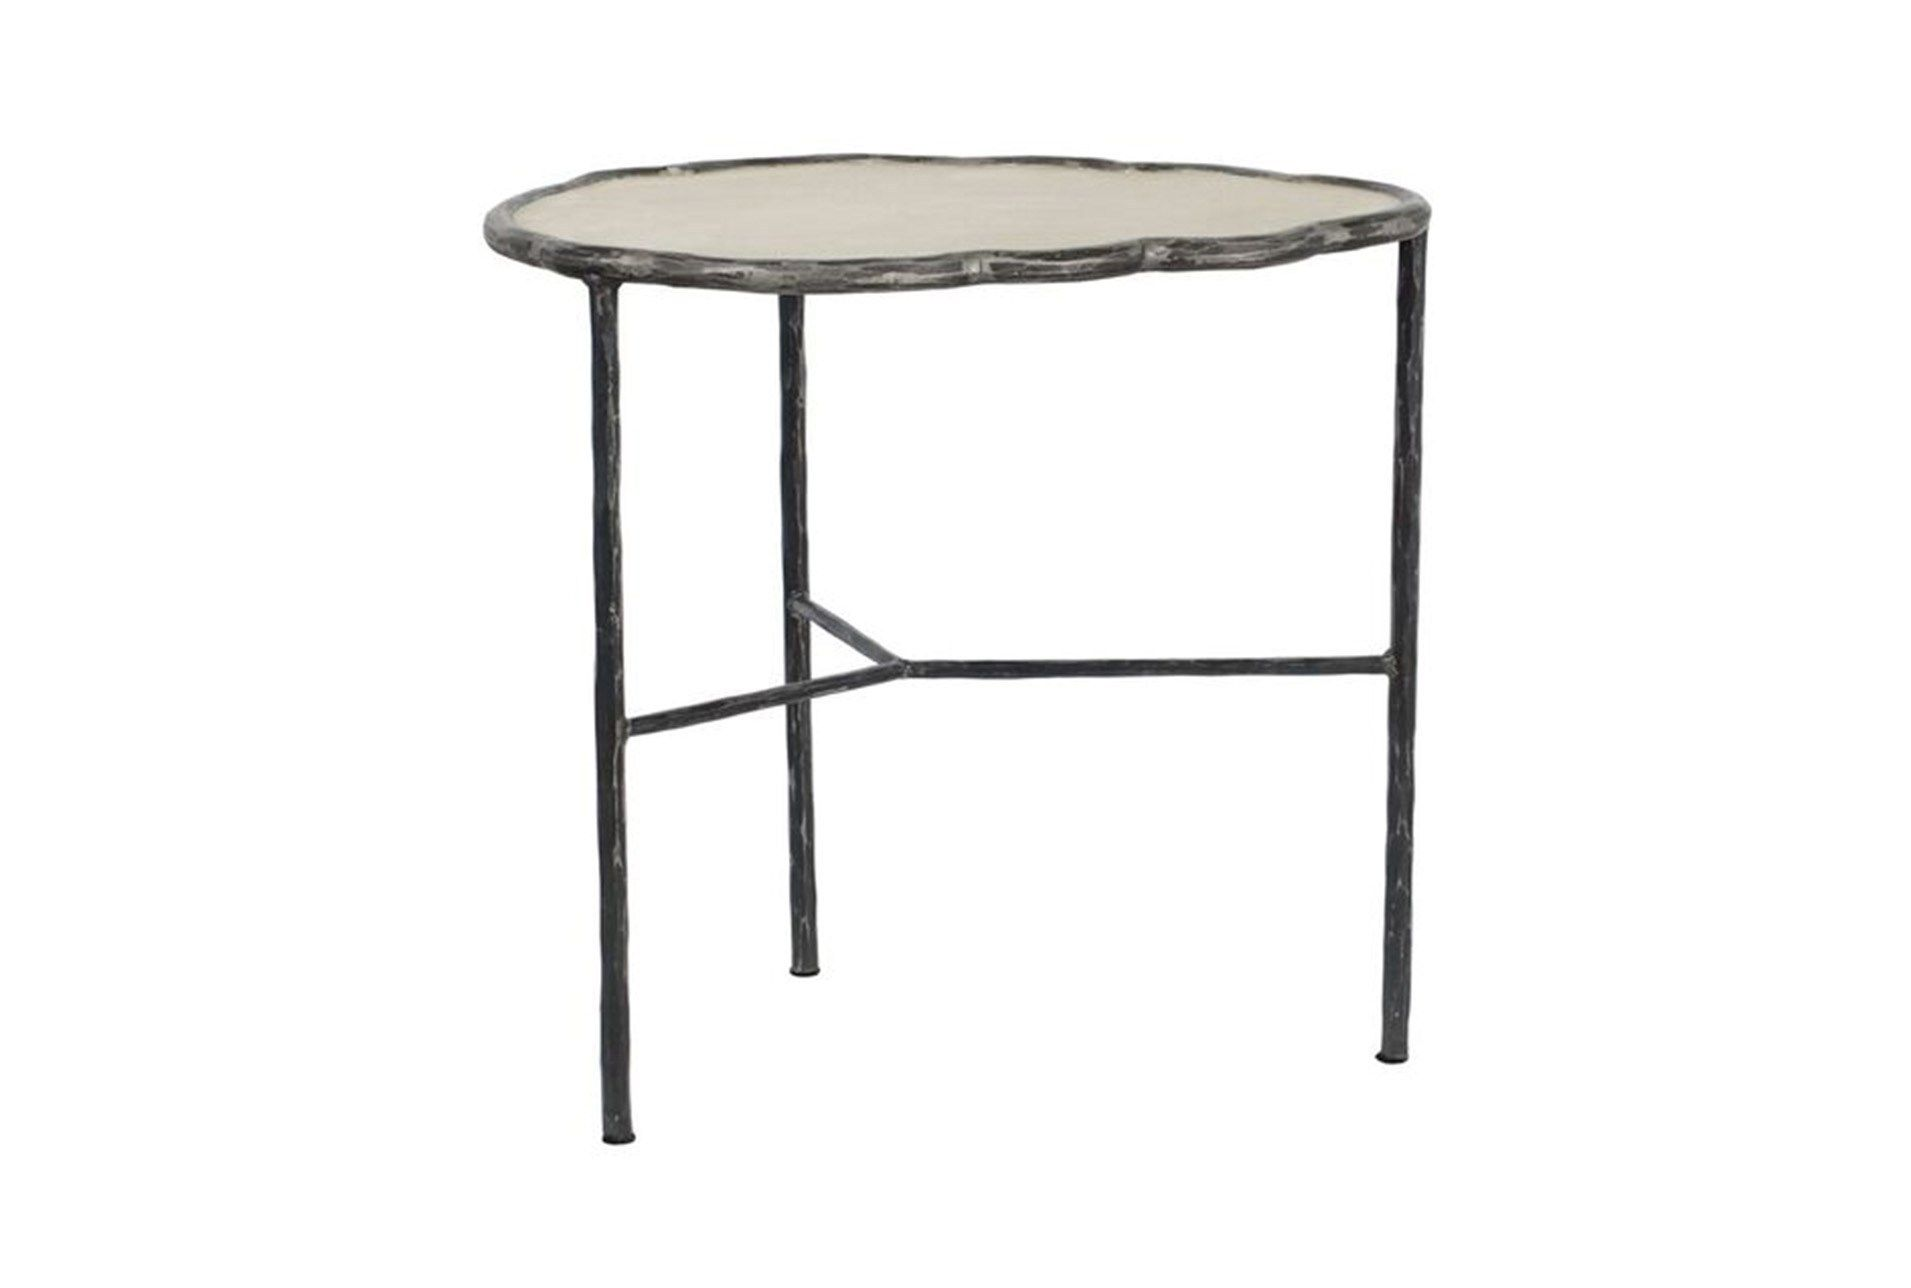 cast iron cement accent table living spaces white multimedia outdoor concrete amp qty has been successfully your cart ikea dining room chairs small patio and west elm wood chair